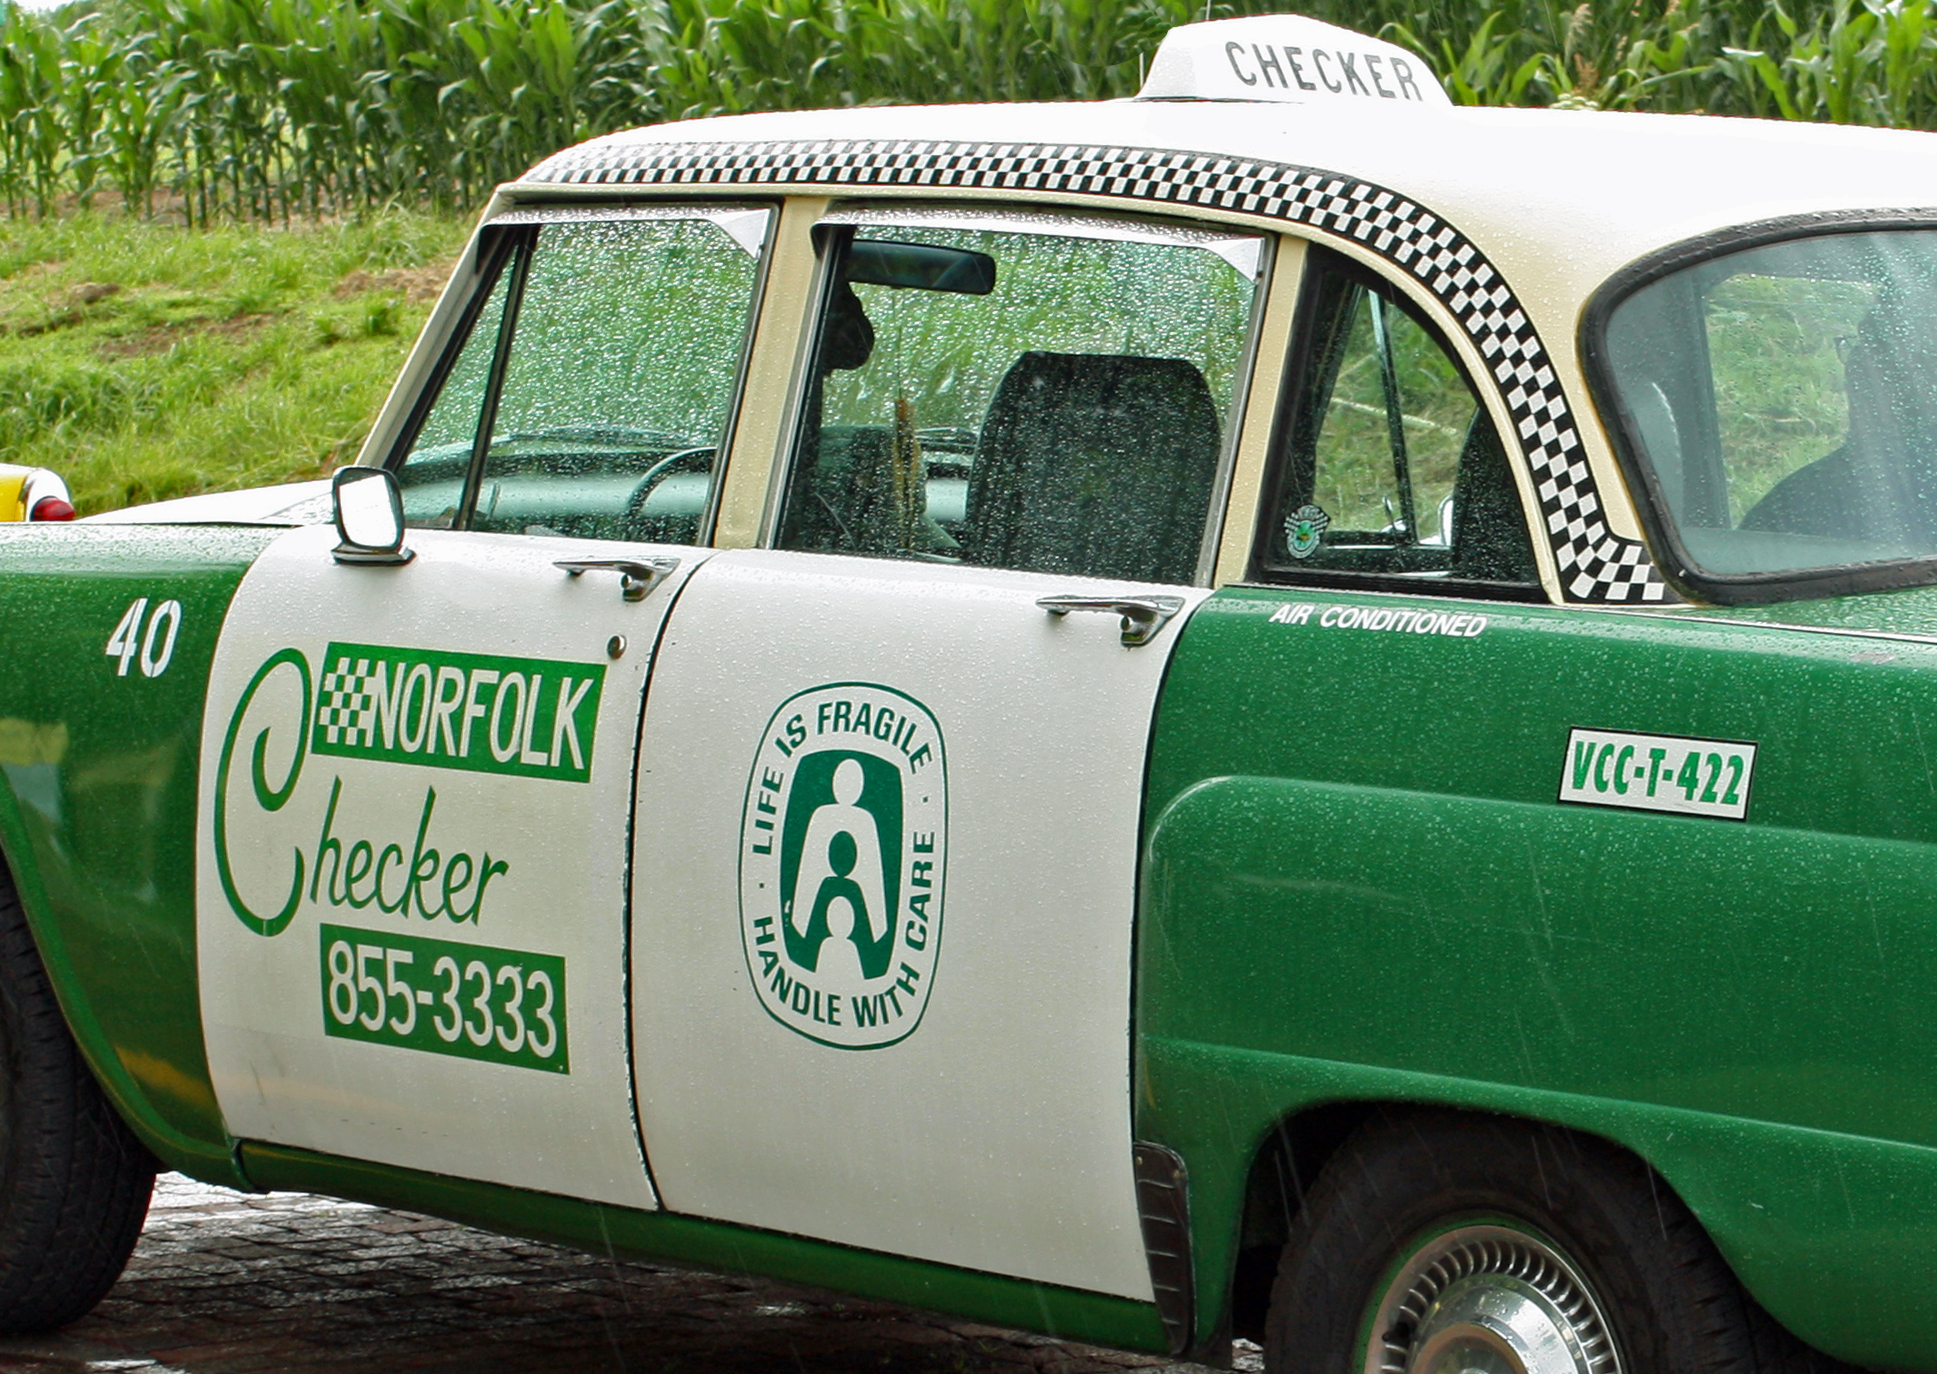 1981 Checker A11 Taxi (5 of 8) | Flickr - Photo Sharing!